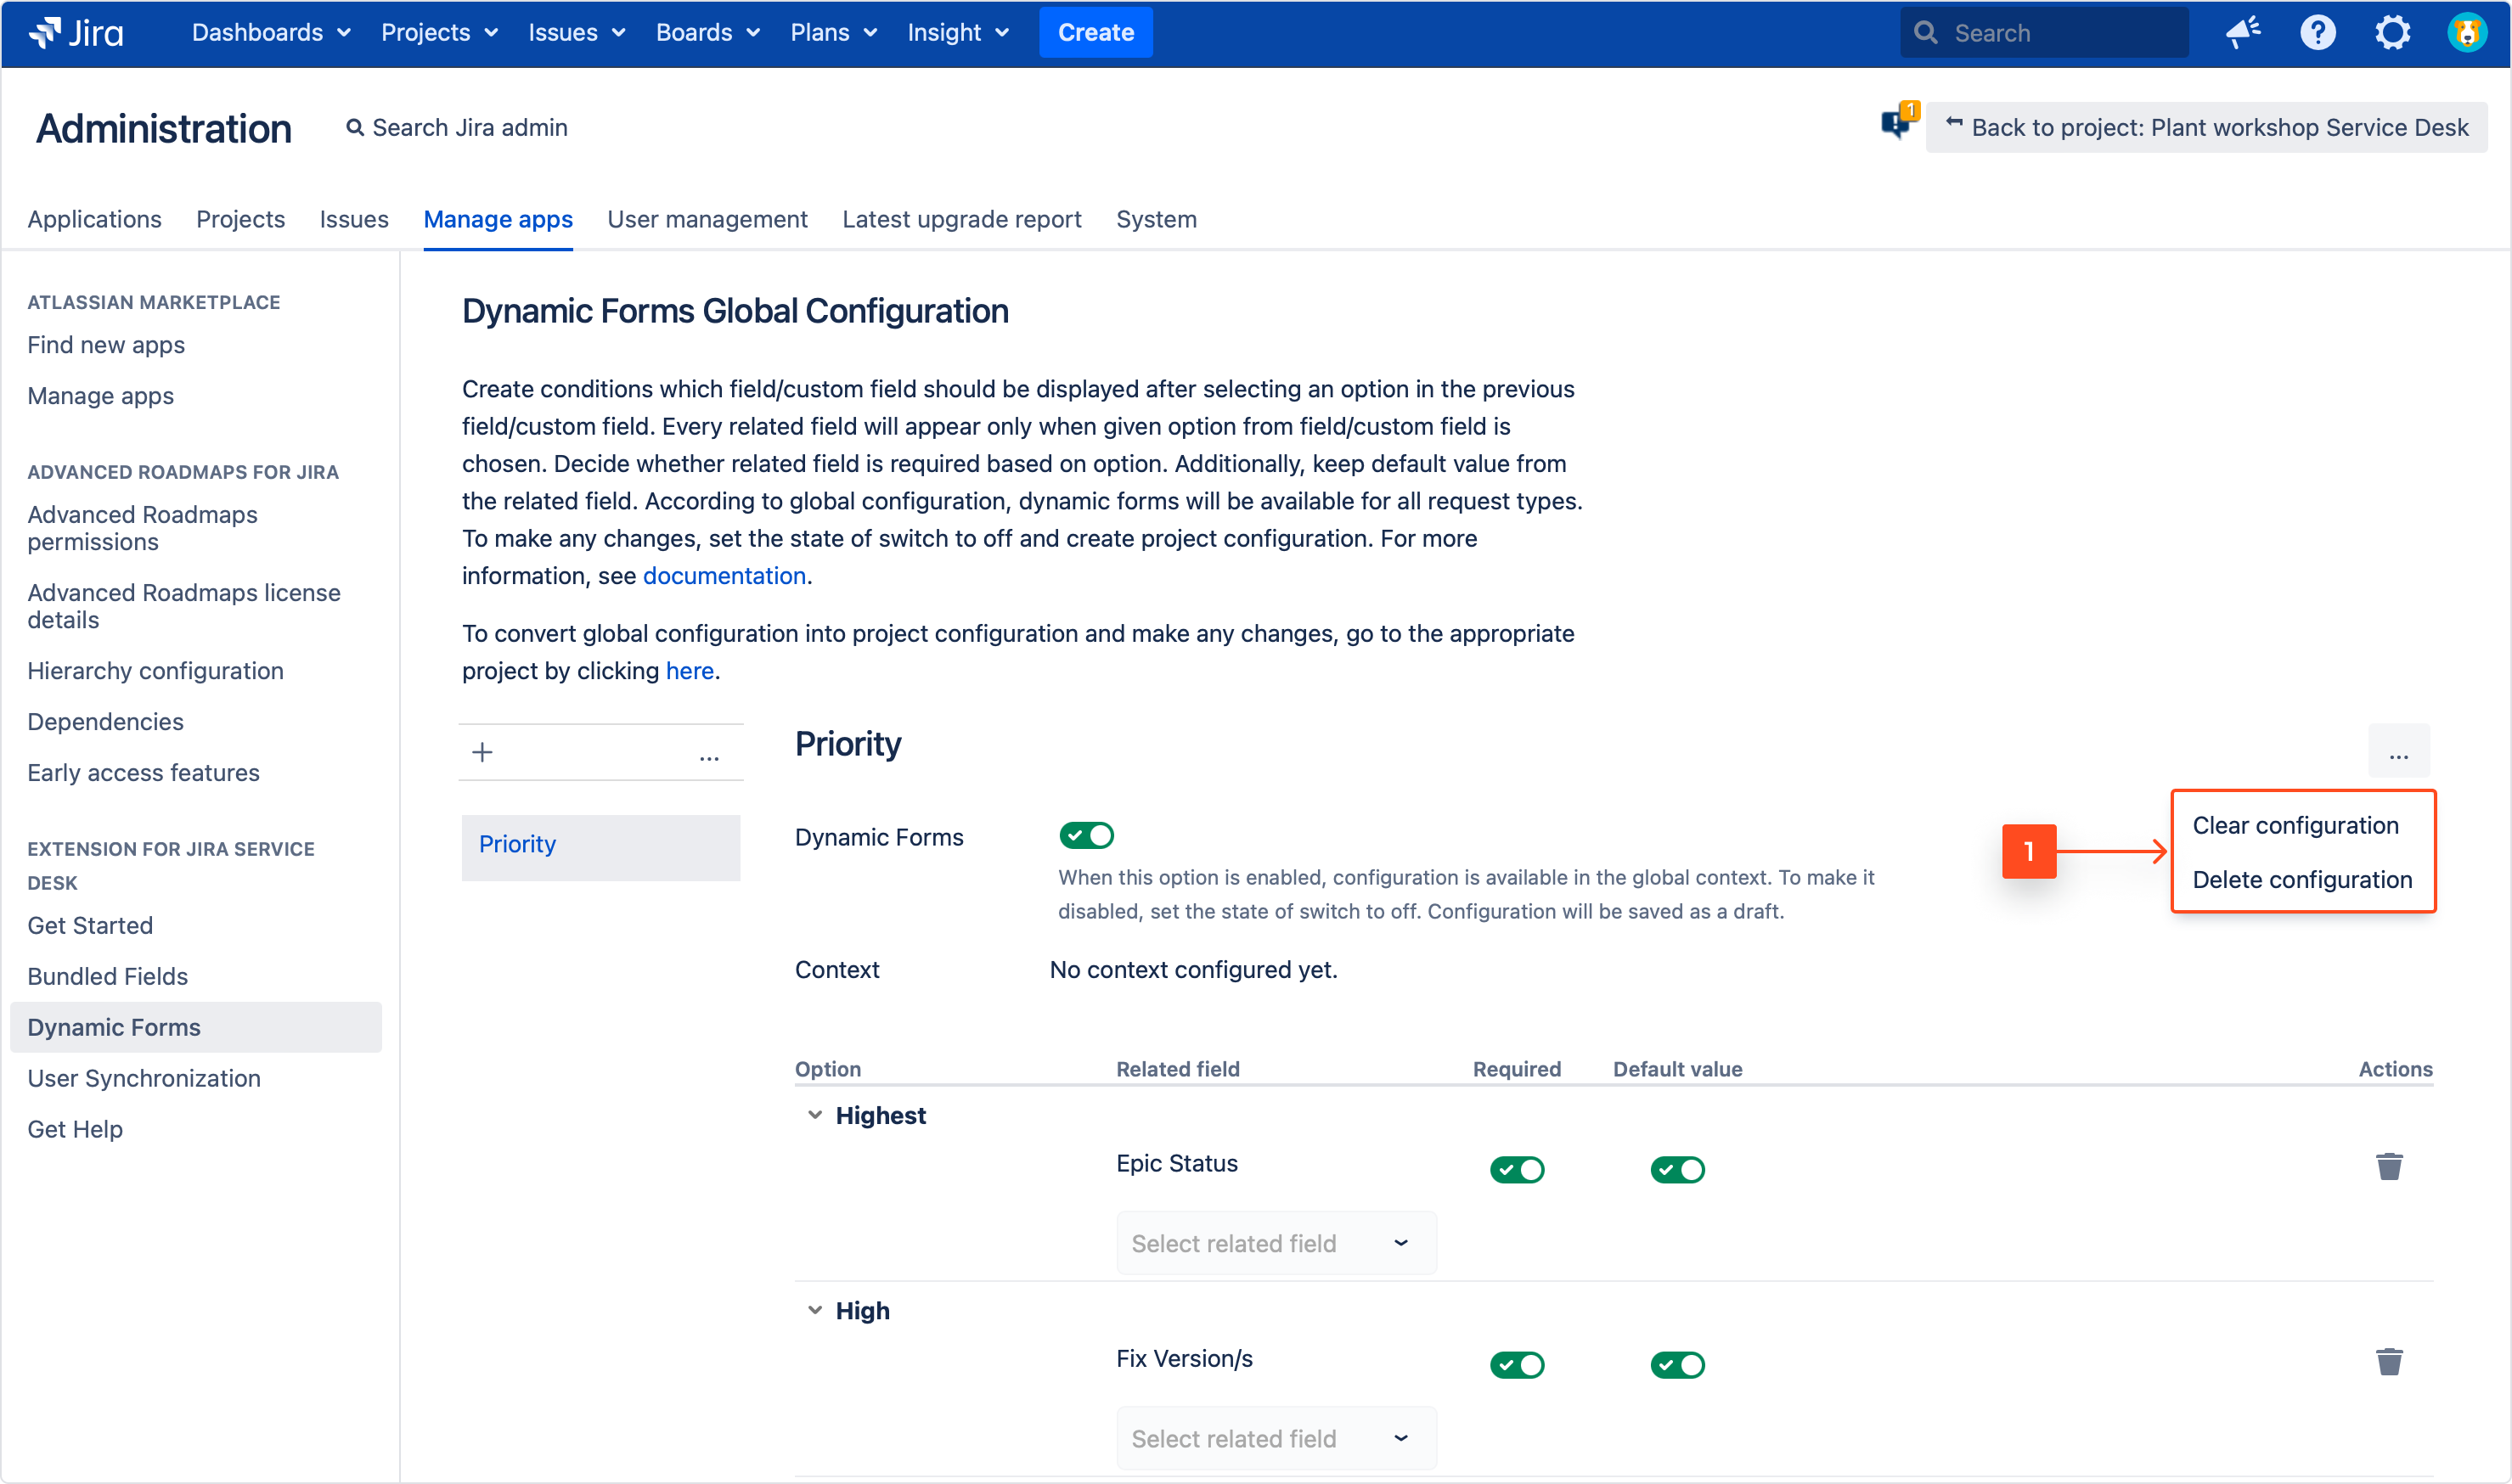 Extension for Jira Service Management: Dynamic Forms Global Configuration